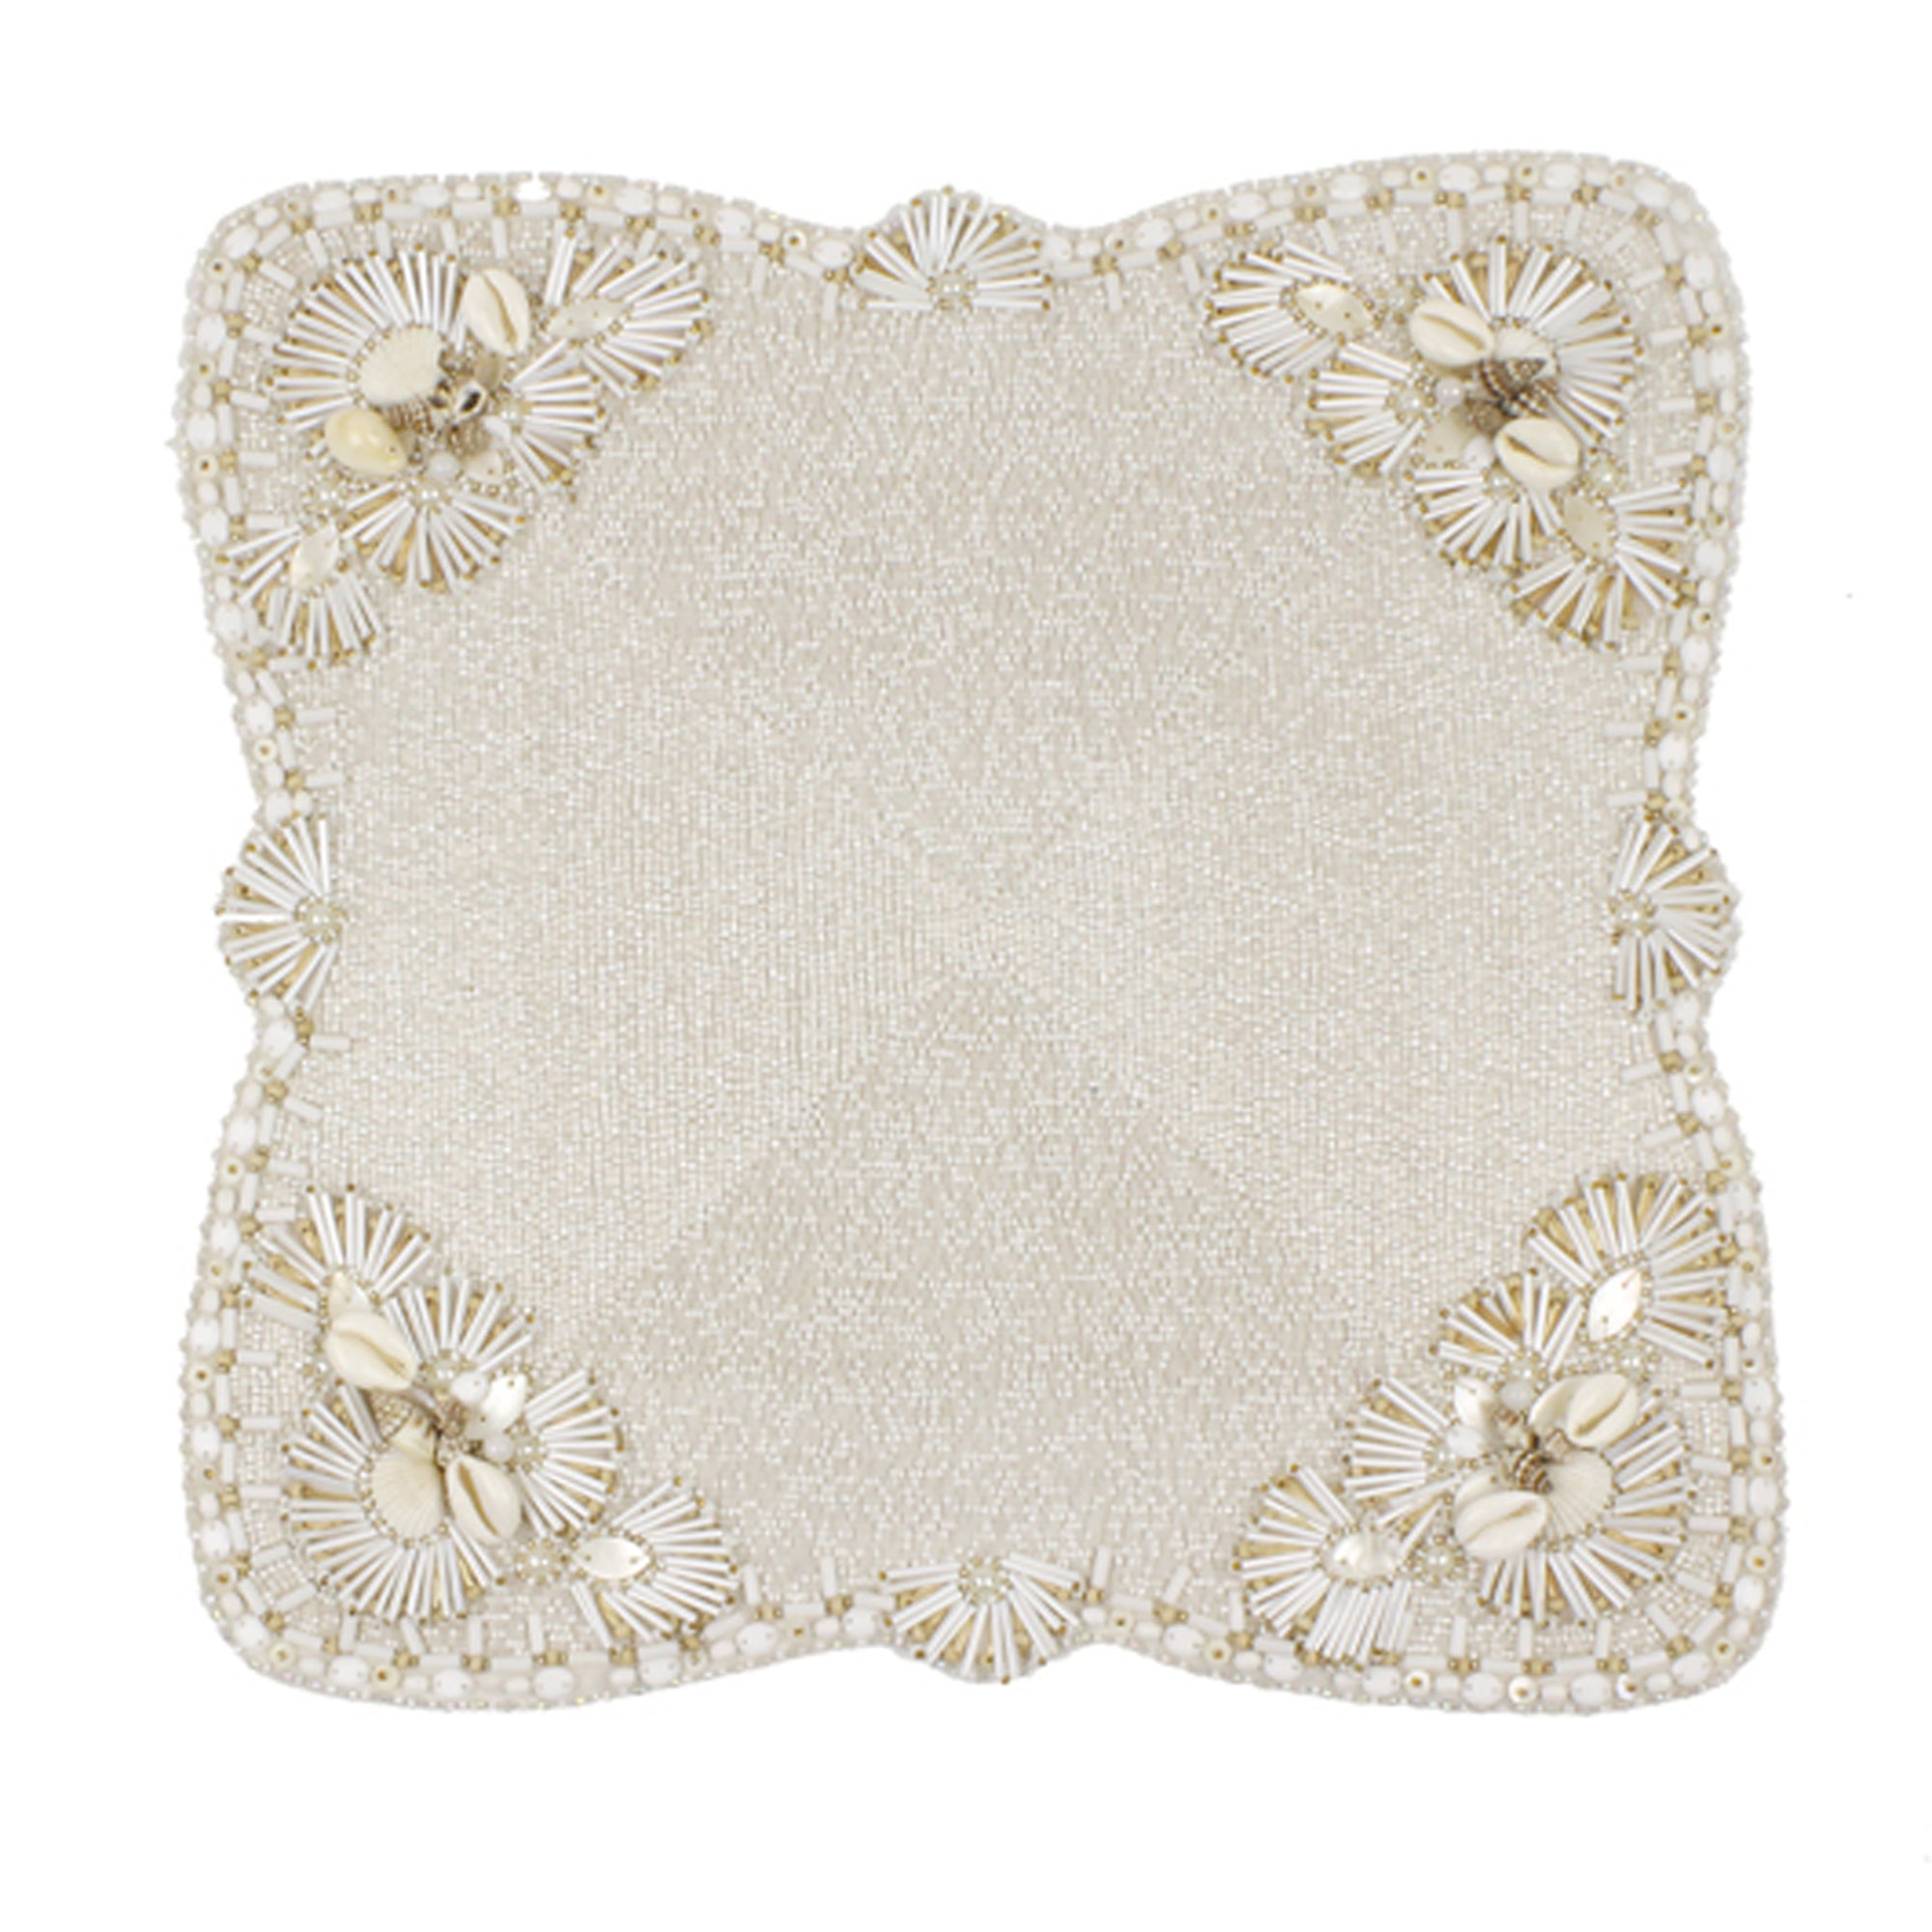 Trevi Placemats - Custom Embroidered Shell Motif